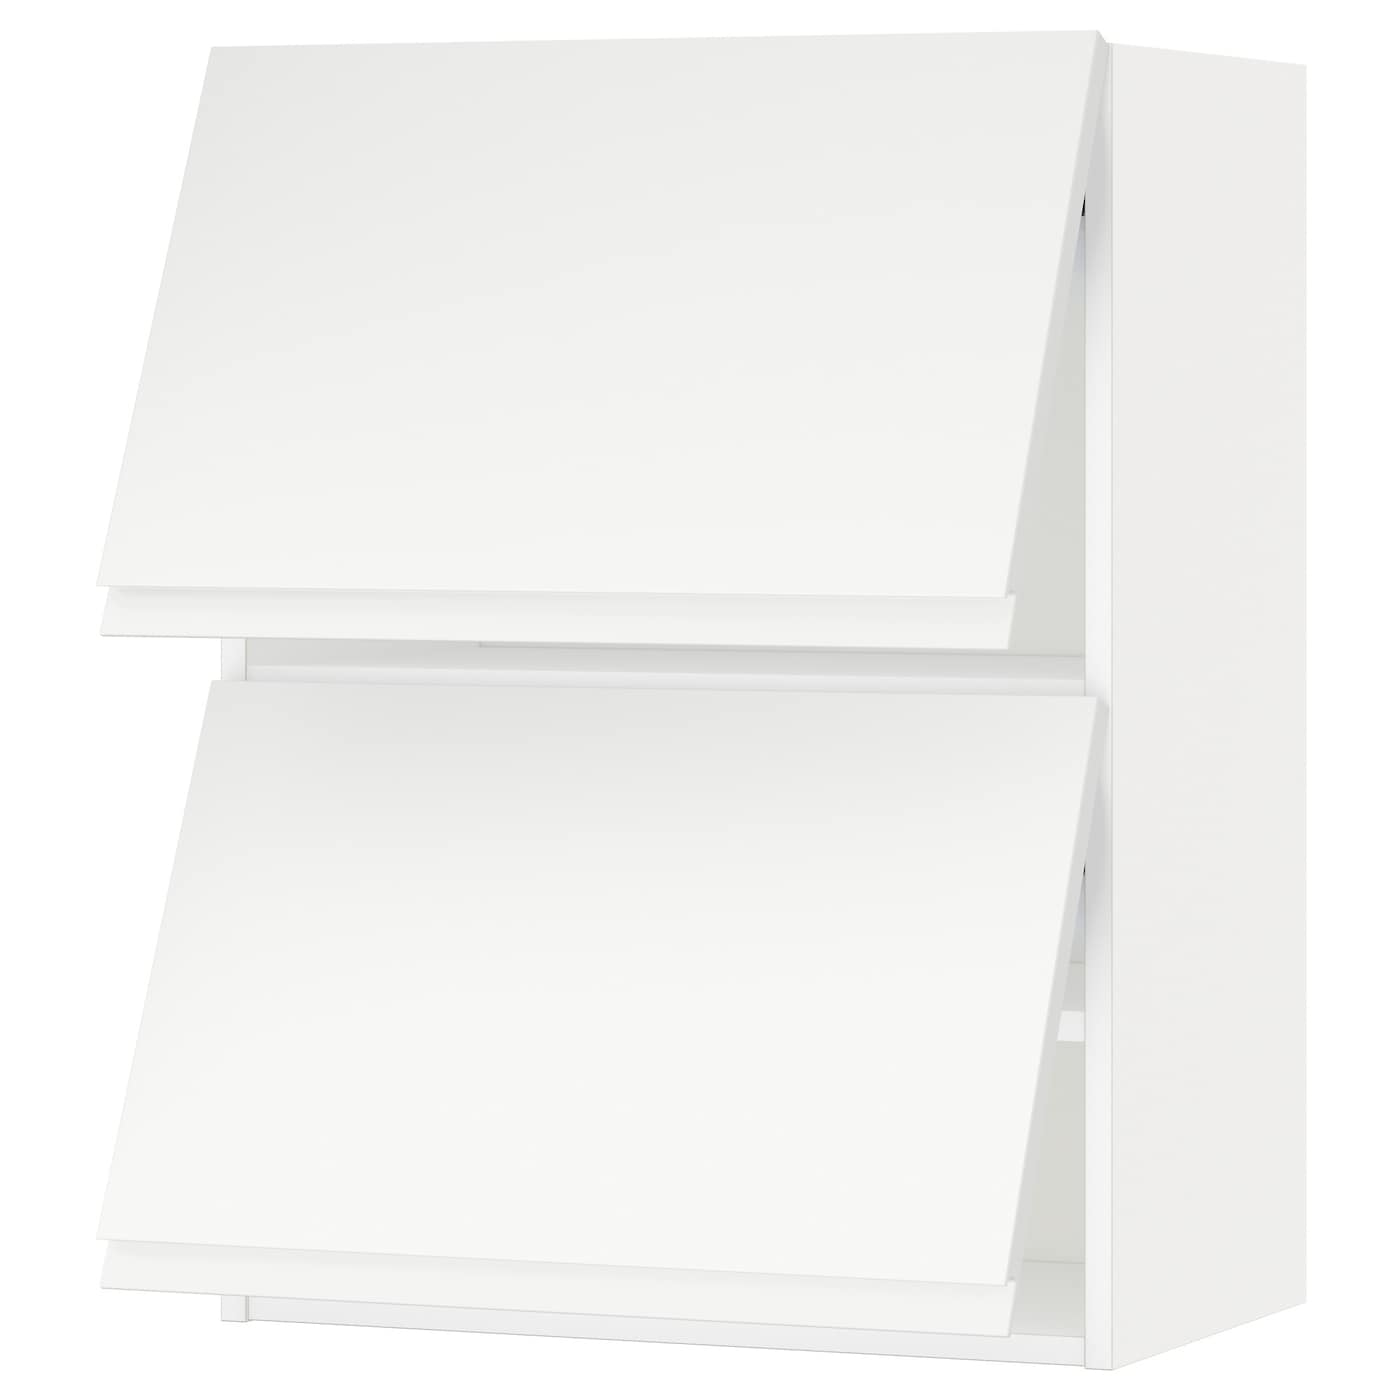 Metod Wall Cabinet With 2 Doors White Voxtorp High Gloss: METOD Wall Cabinet Horizontal W 2 Doors White/voxtorp Matt